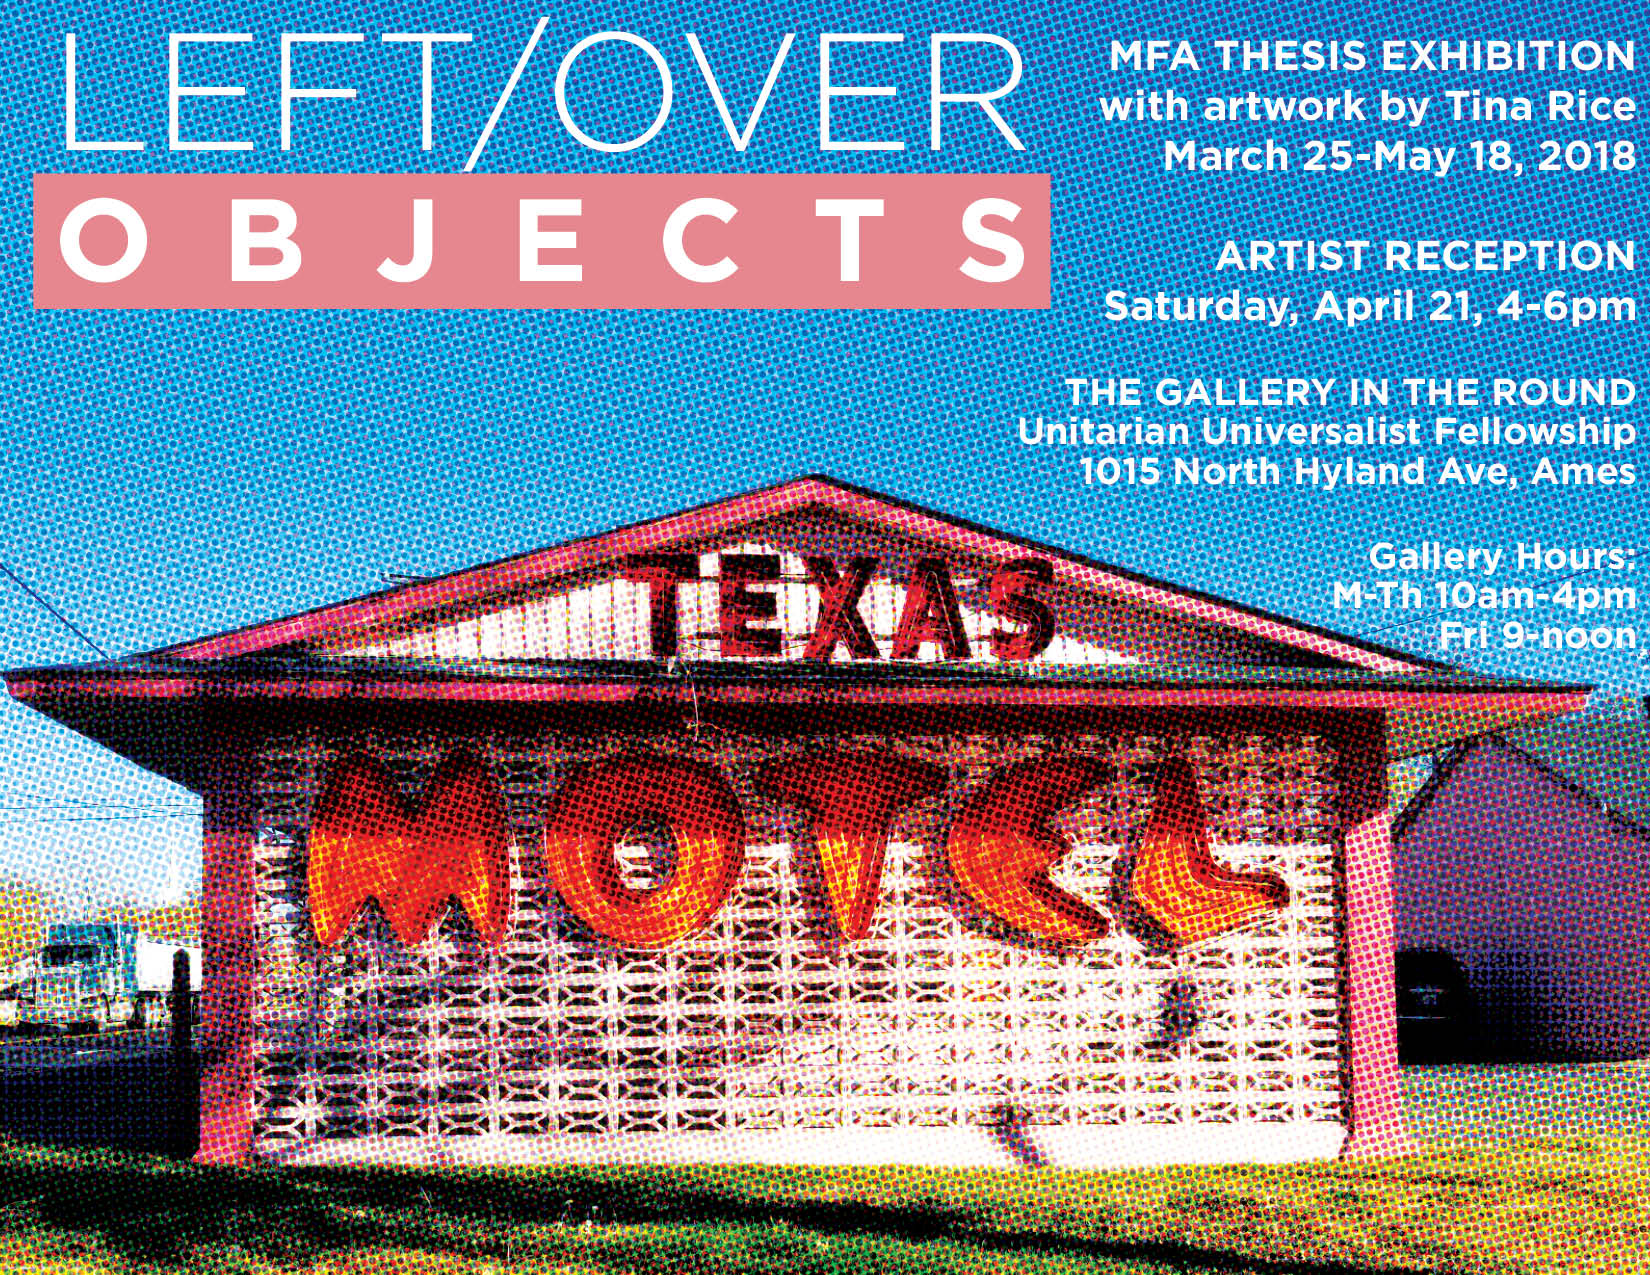 Tina Rice MFA Thesis Exhibition Poster